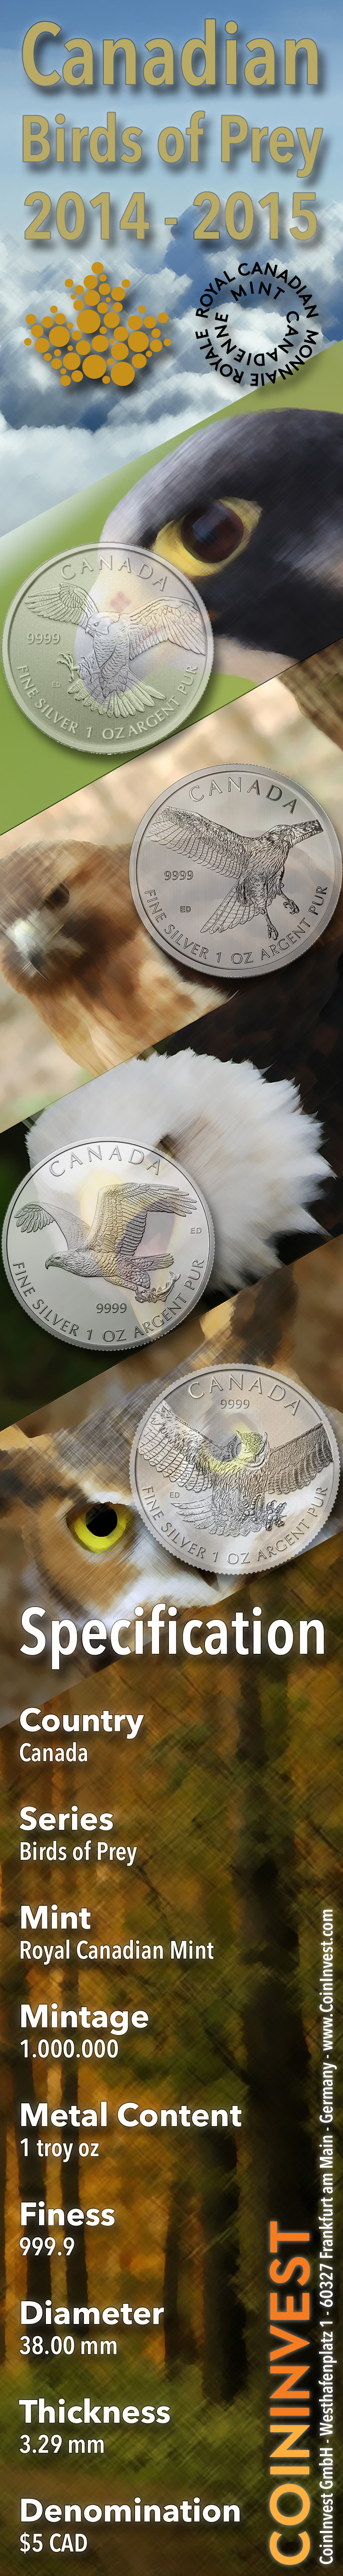 Canadian-Birds-of-Prey_CoinInvest